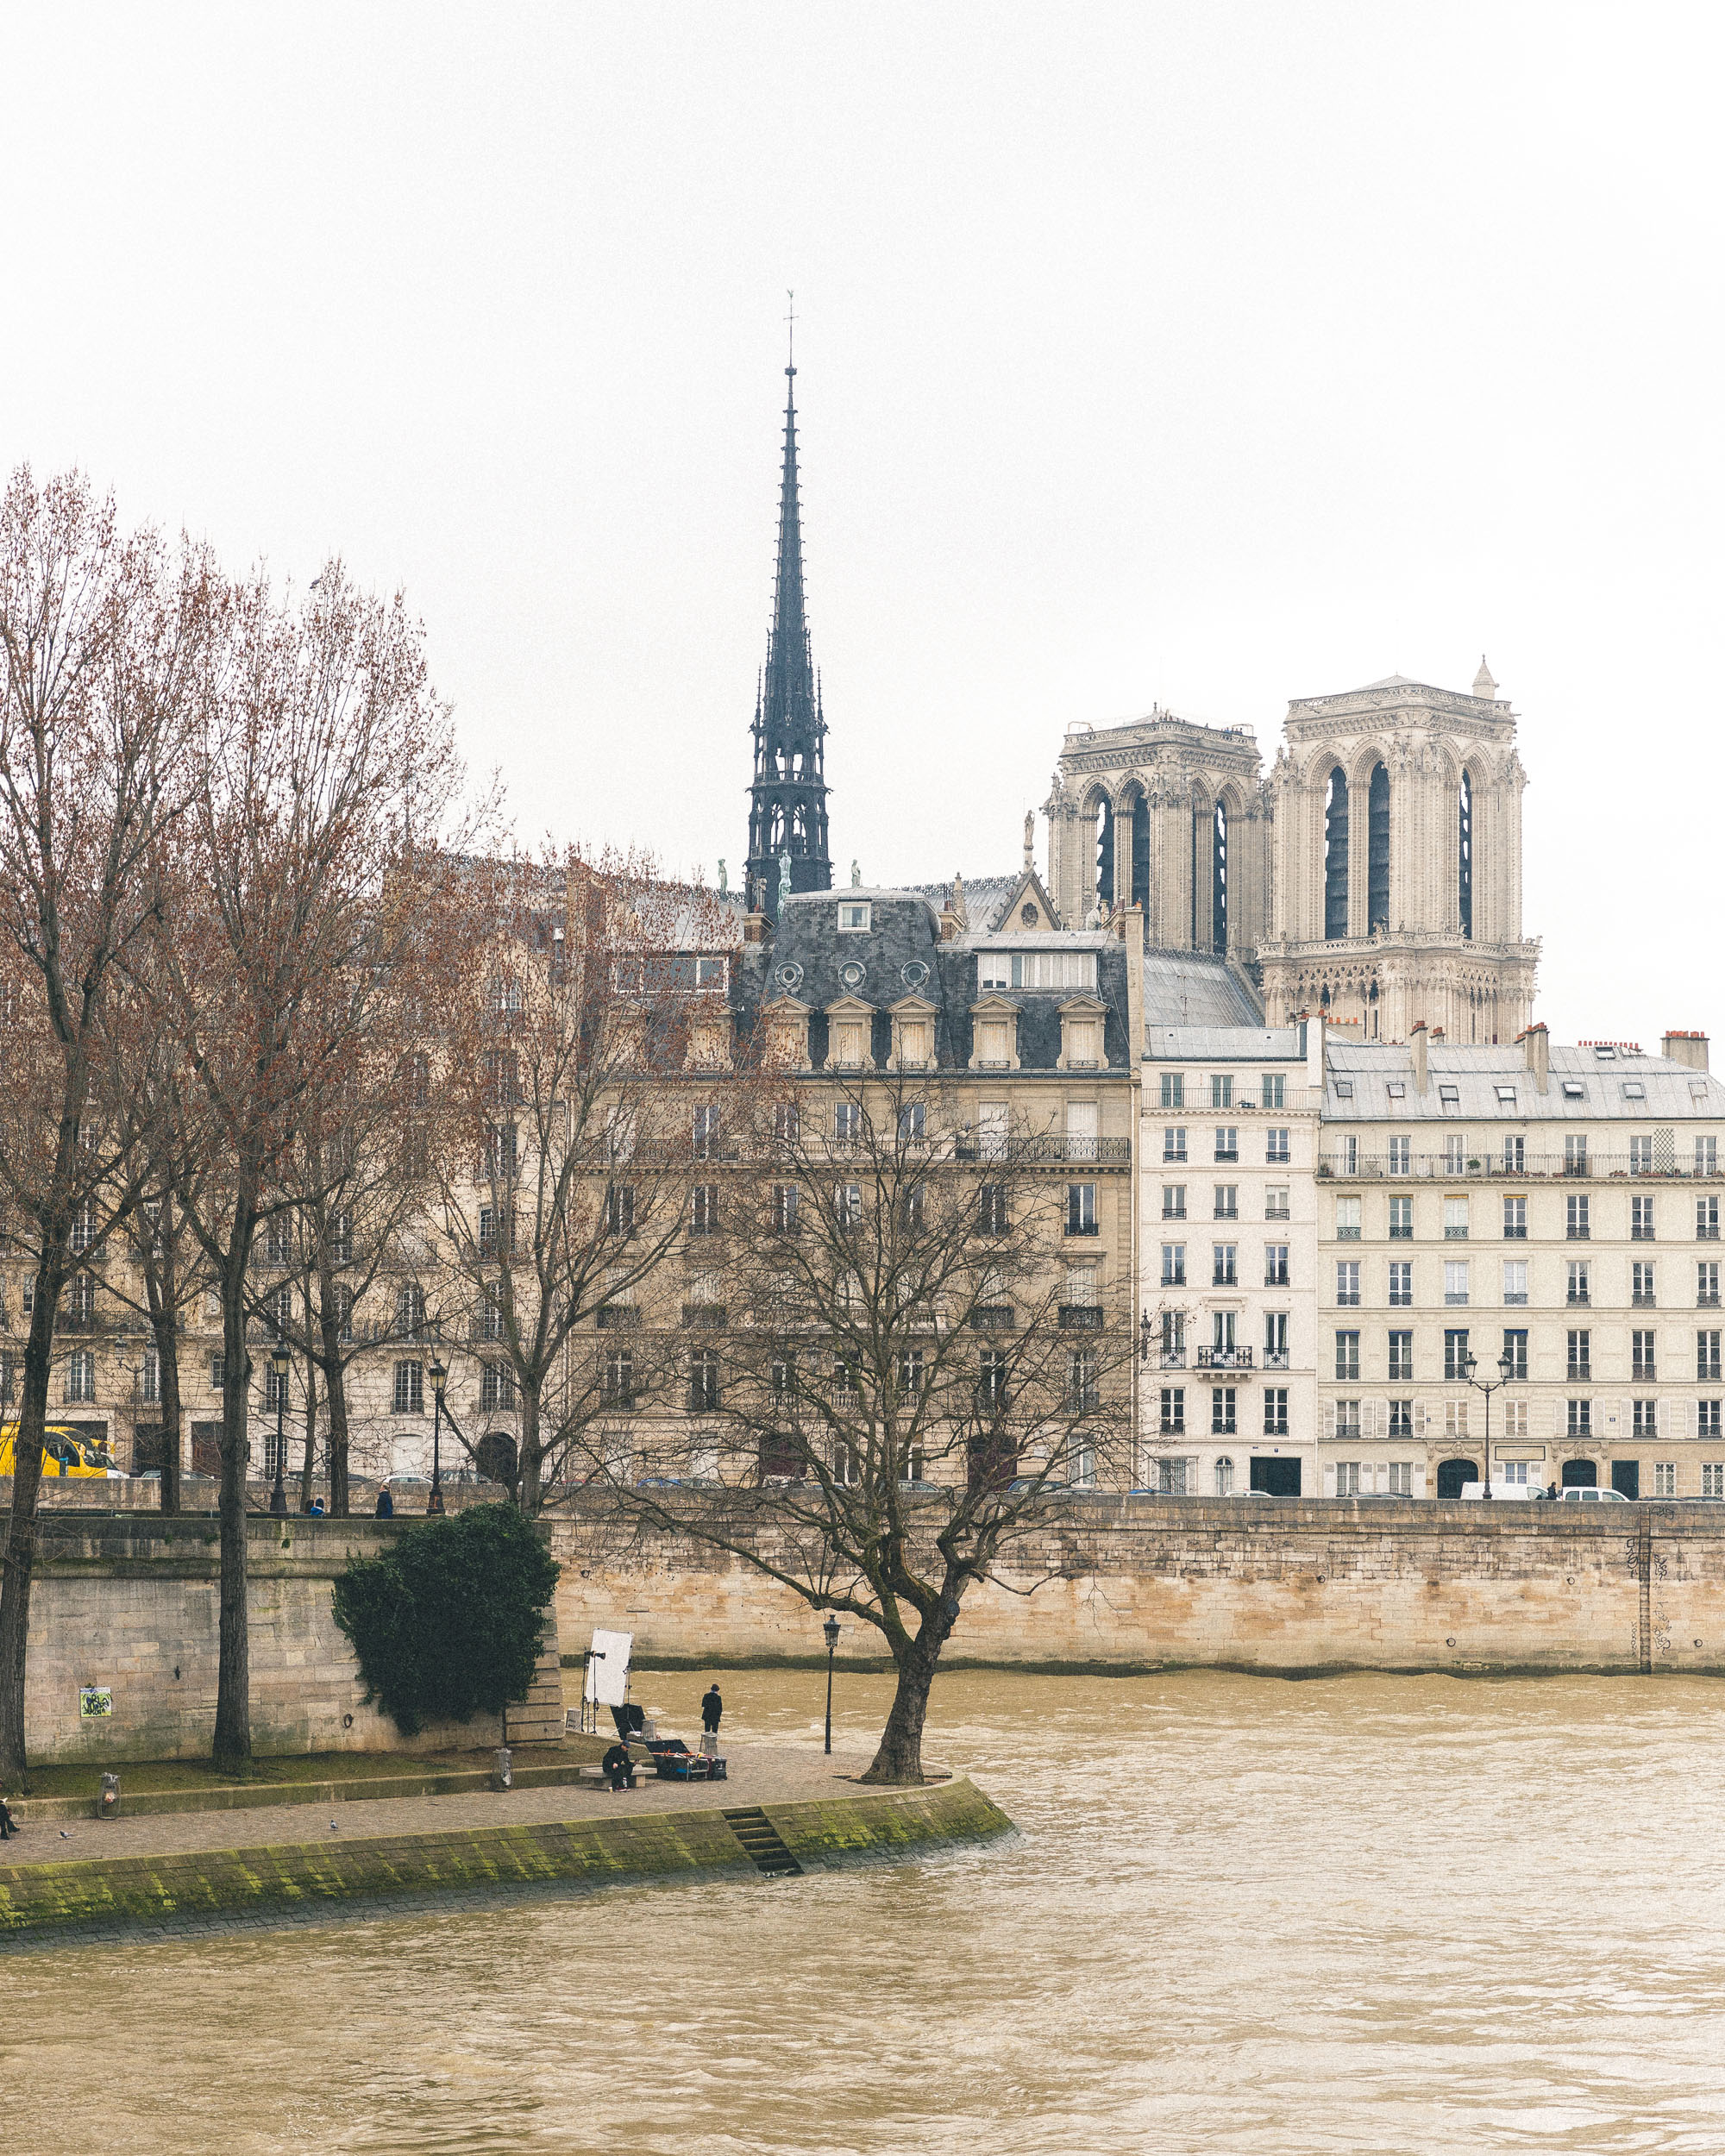 Walks along the River Seine - Most romantic parisian places - Complete Paris Travel Guide